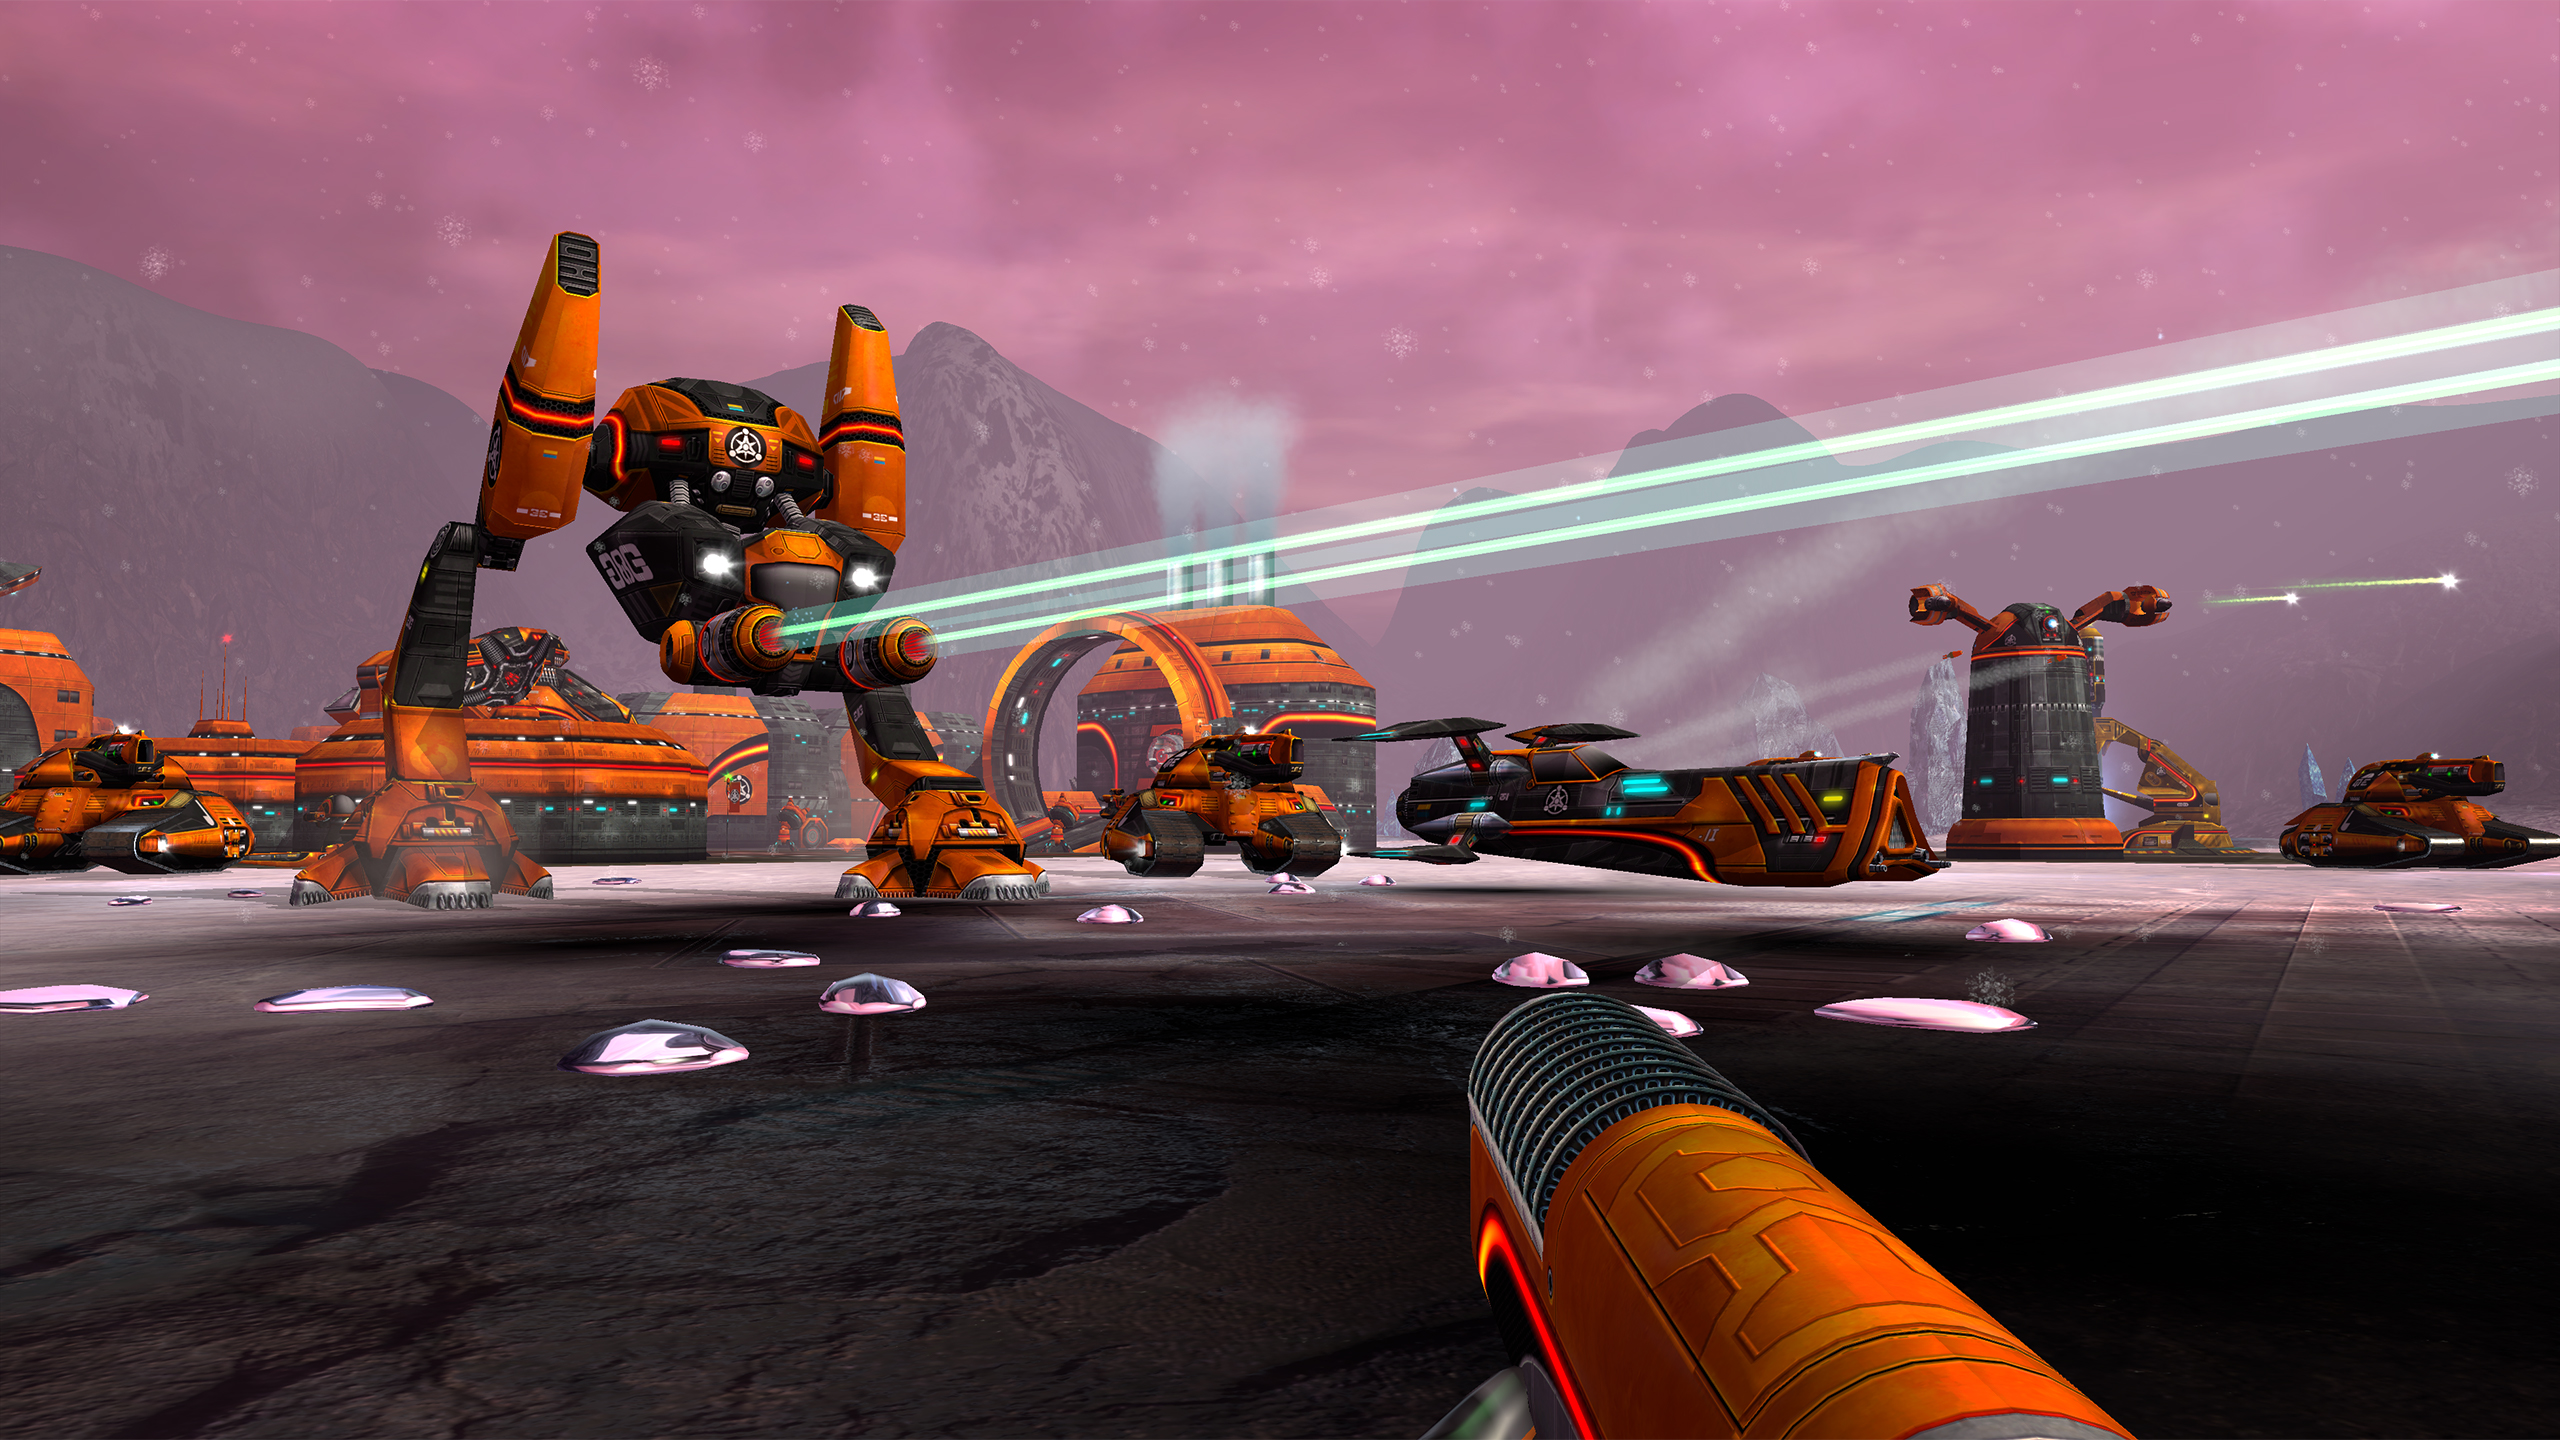 Battlezone 2 is being remade as battlezone combat for Battlezone 2